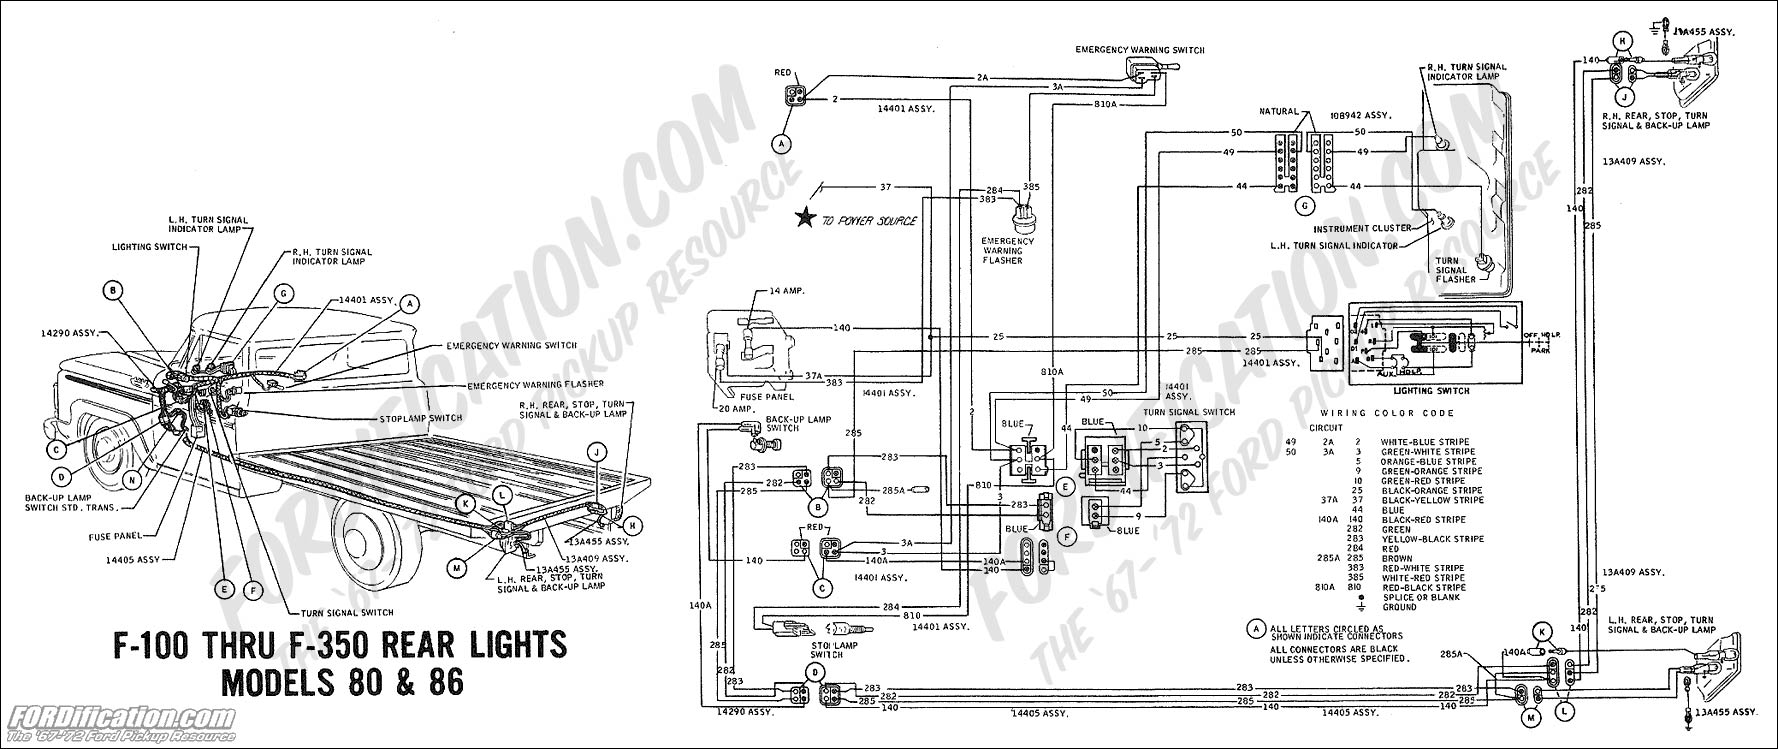 100 Amp Alt Wiring Diagram Ford Motorcraft 1978 F100 Interior Parts